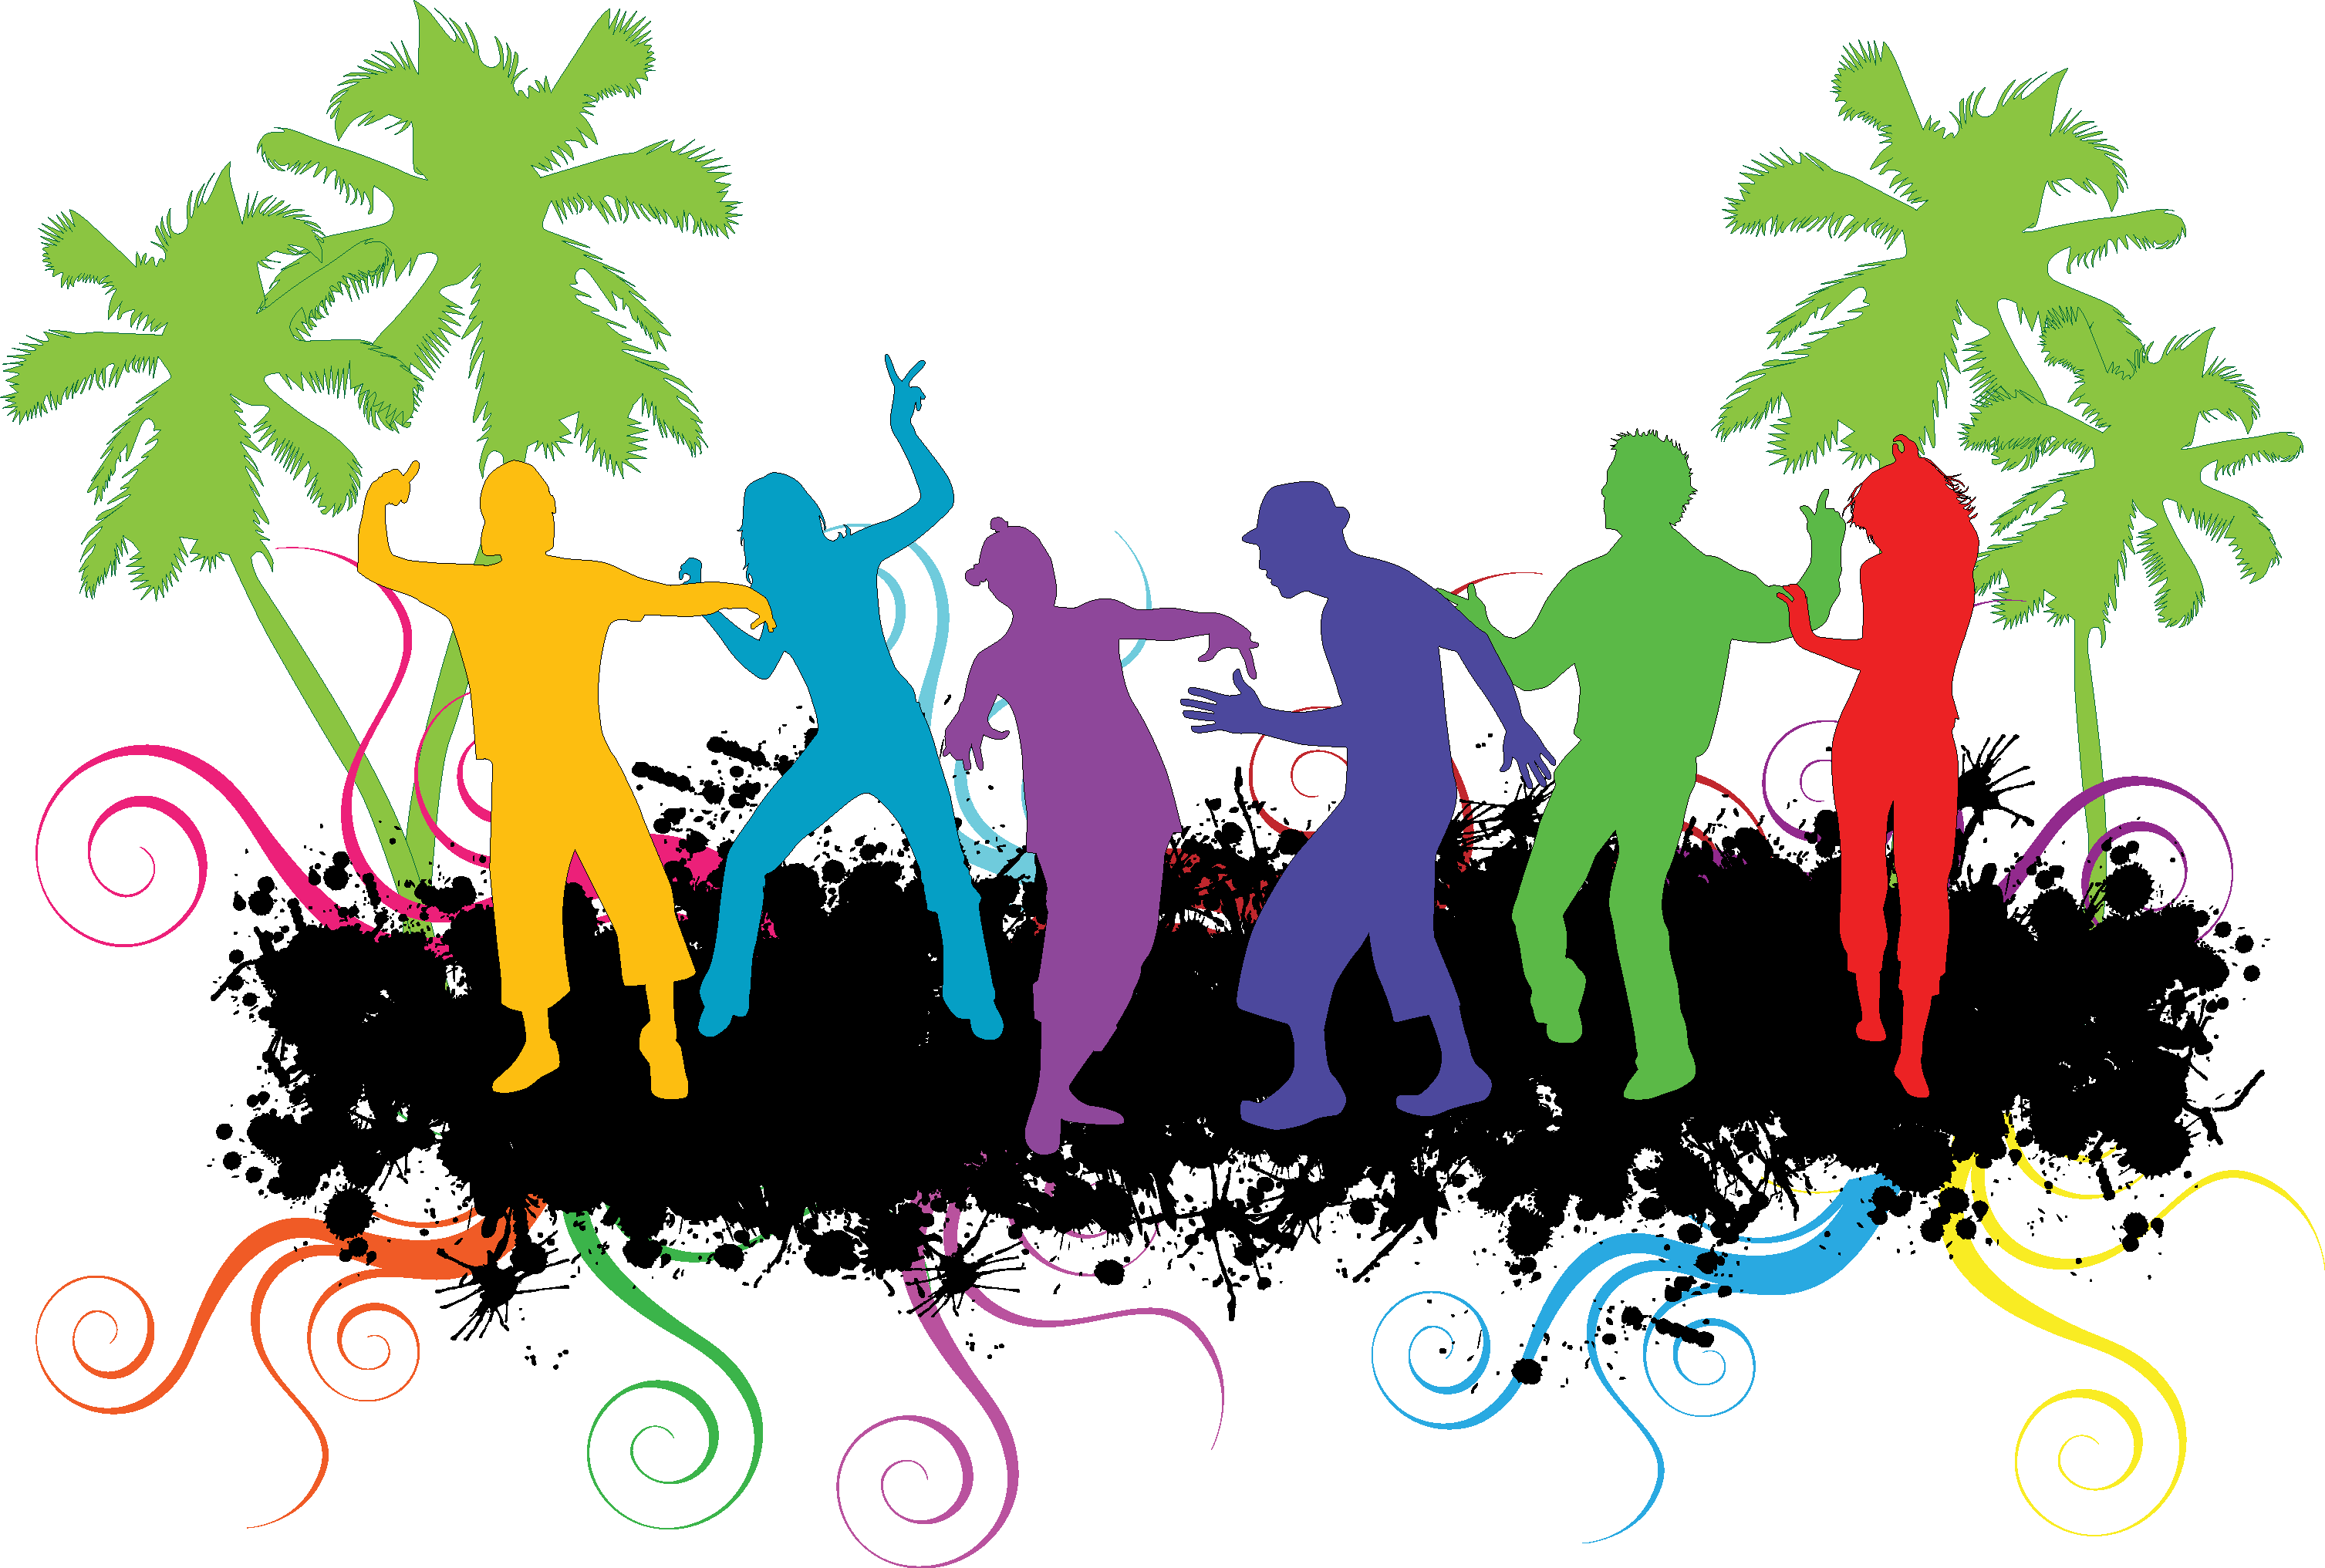 Clipart house party clip art transparent stock Party People Silhouette at GetDrawings.com   Free for personal use ... clip art transparent stock